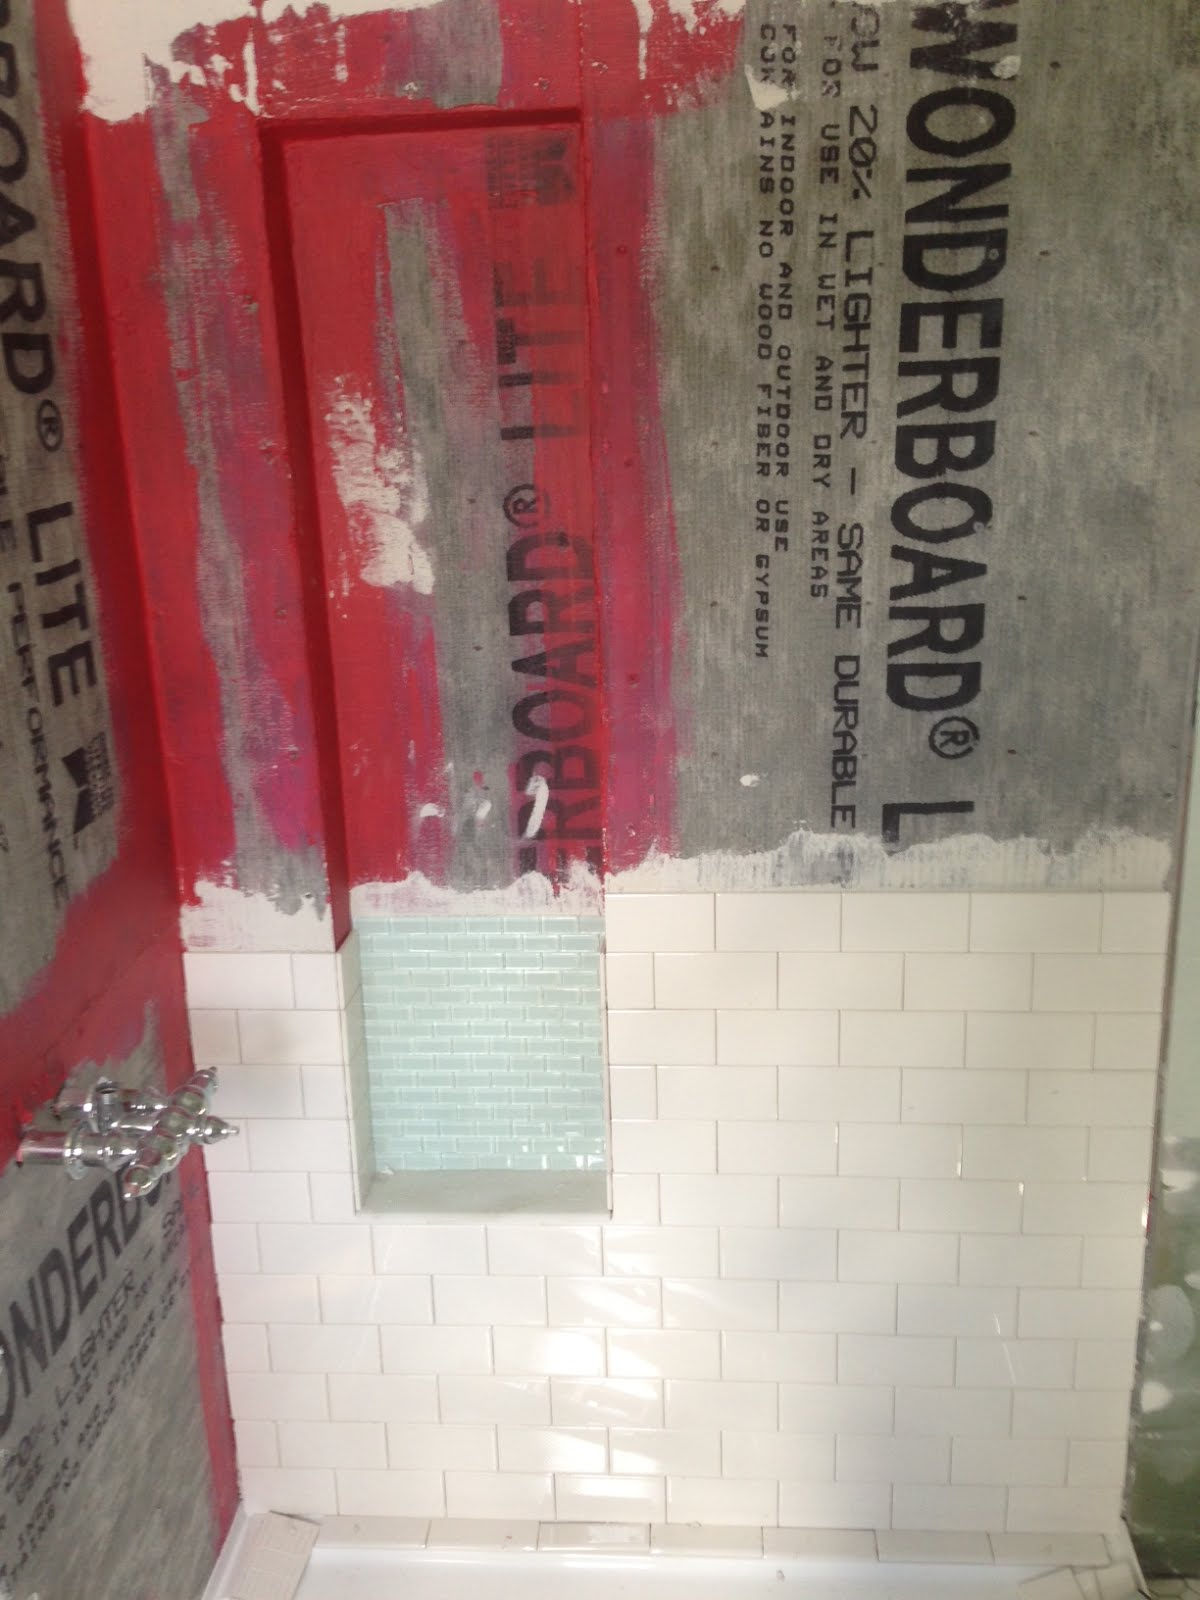 diy shower niche with glass mosaic and white subway tiles using Redgard waterproof membrane-www.goldenboysandme.com